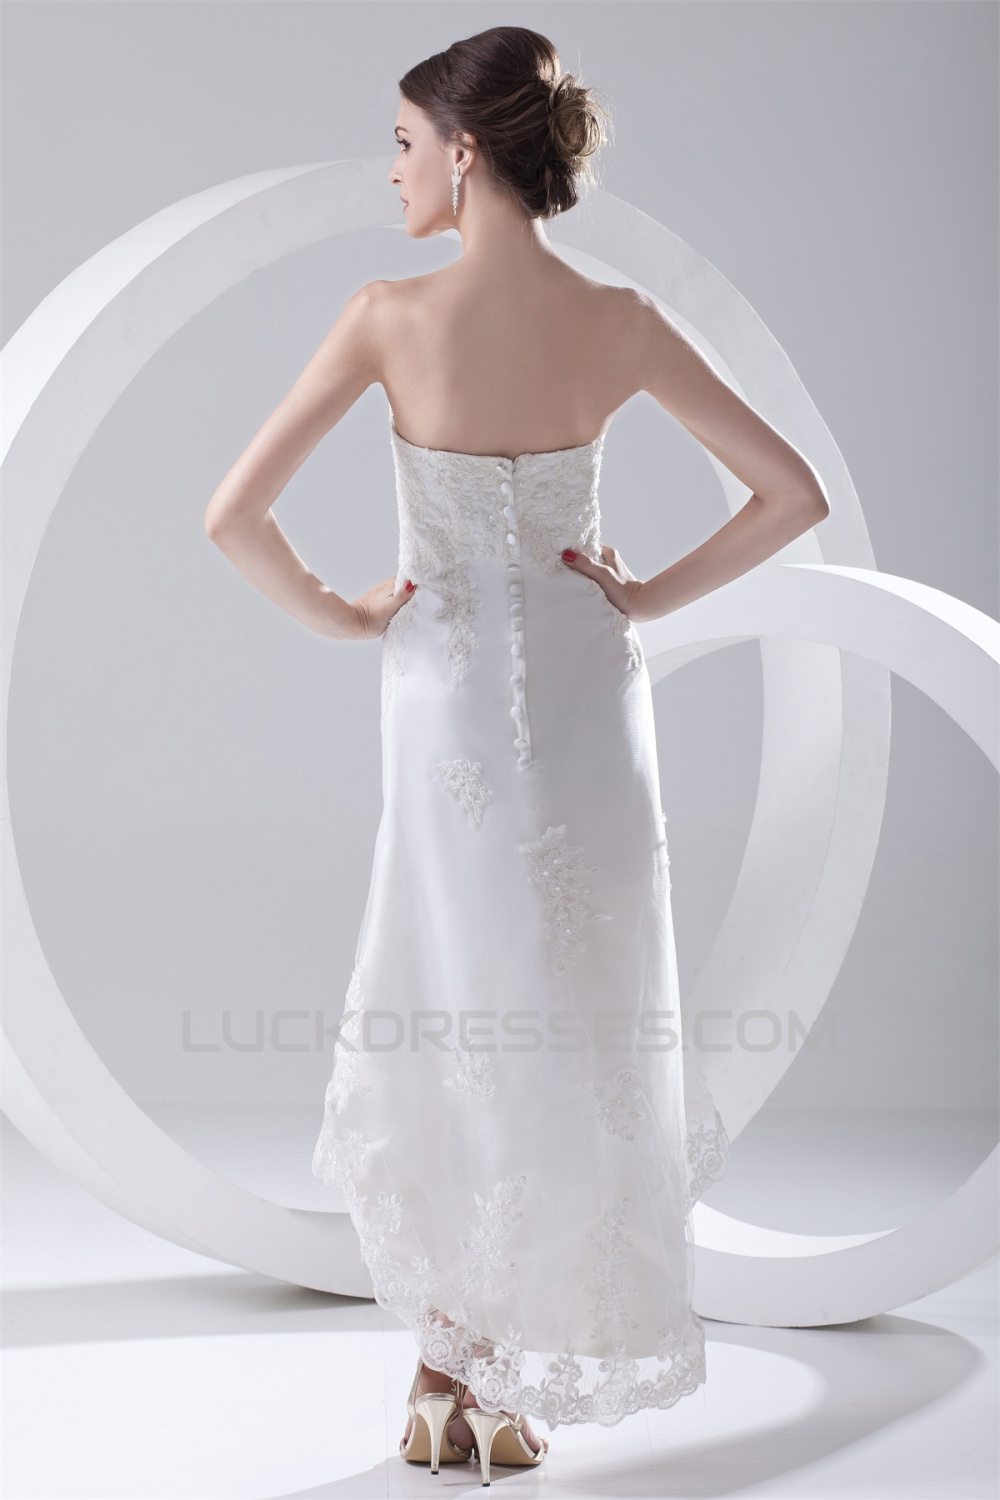 Satin Lace A Line Soft Sweetheart Reception High Low